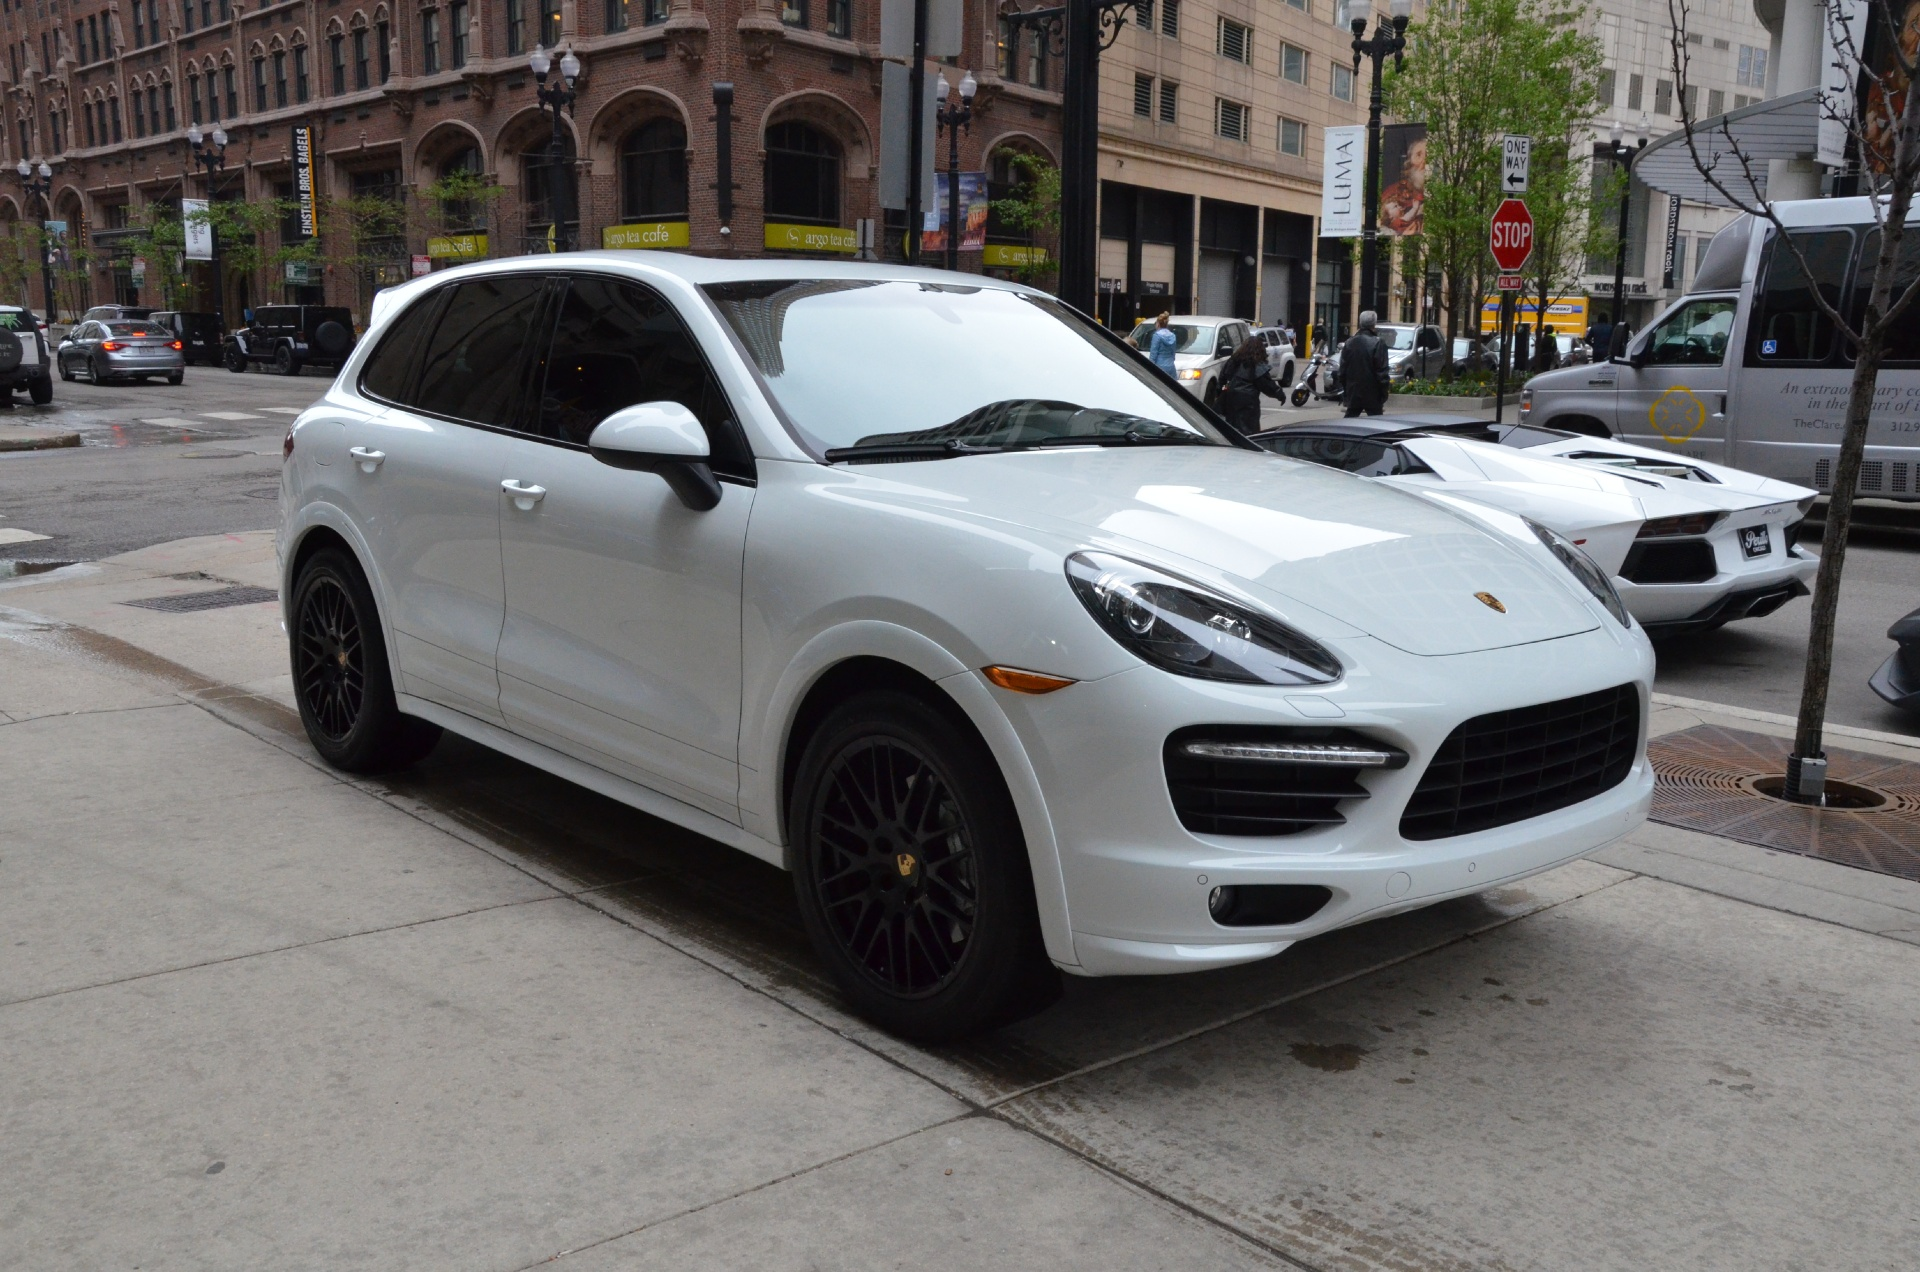 2014 porsche cayenne gts stock gc1661b for sale near chicago il il porsche dealer. Black Bedroom Furniture Sets. Home Design Ideas